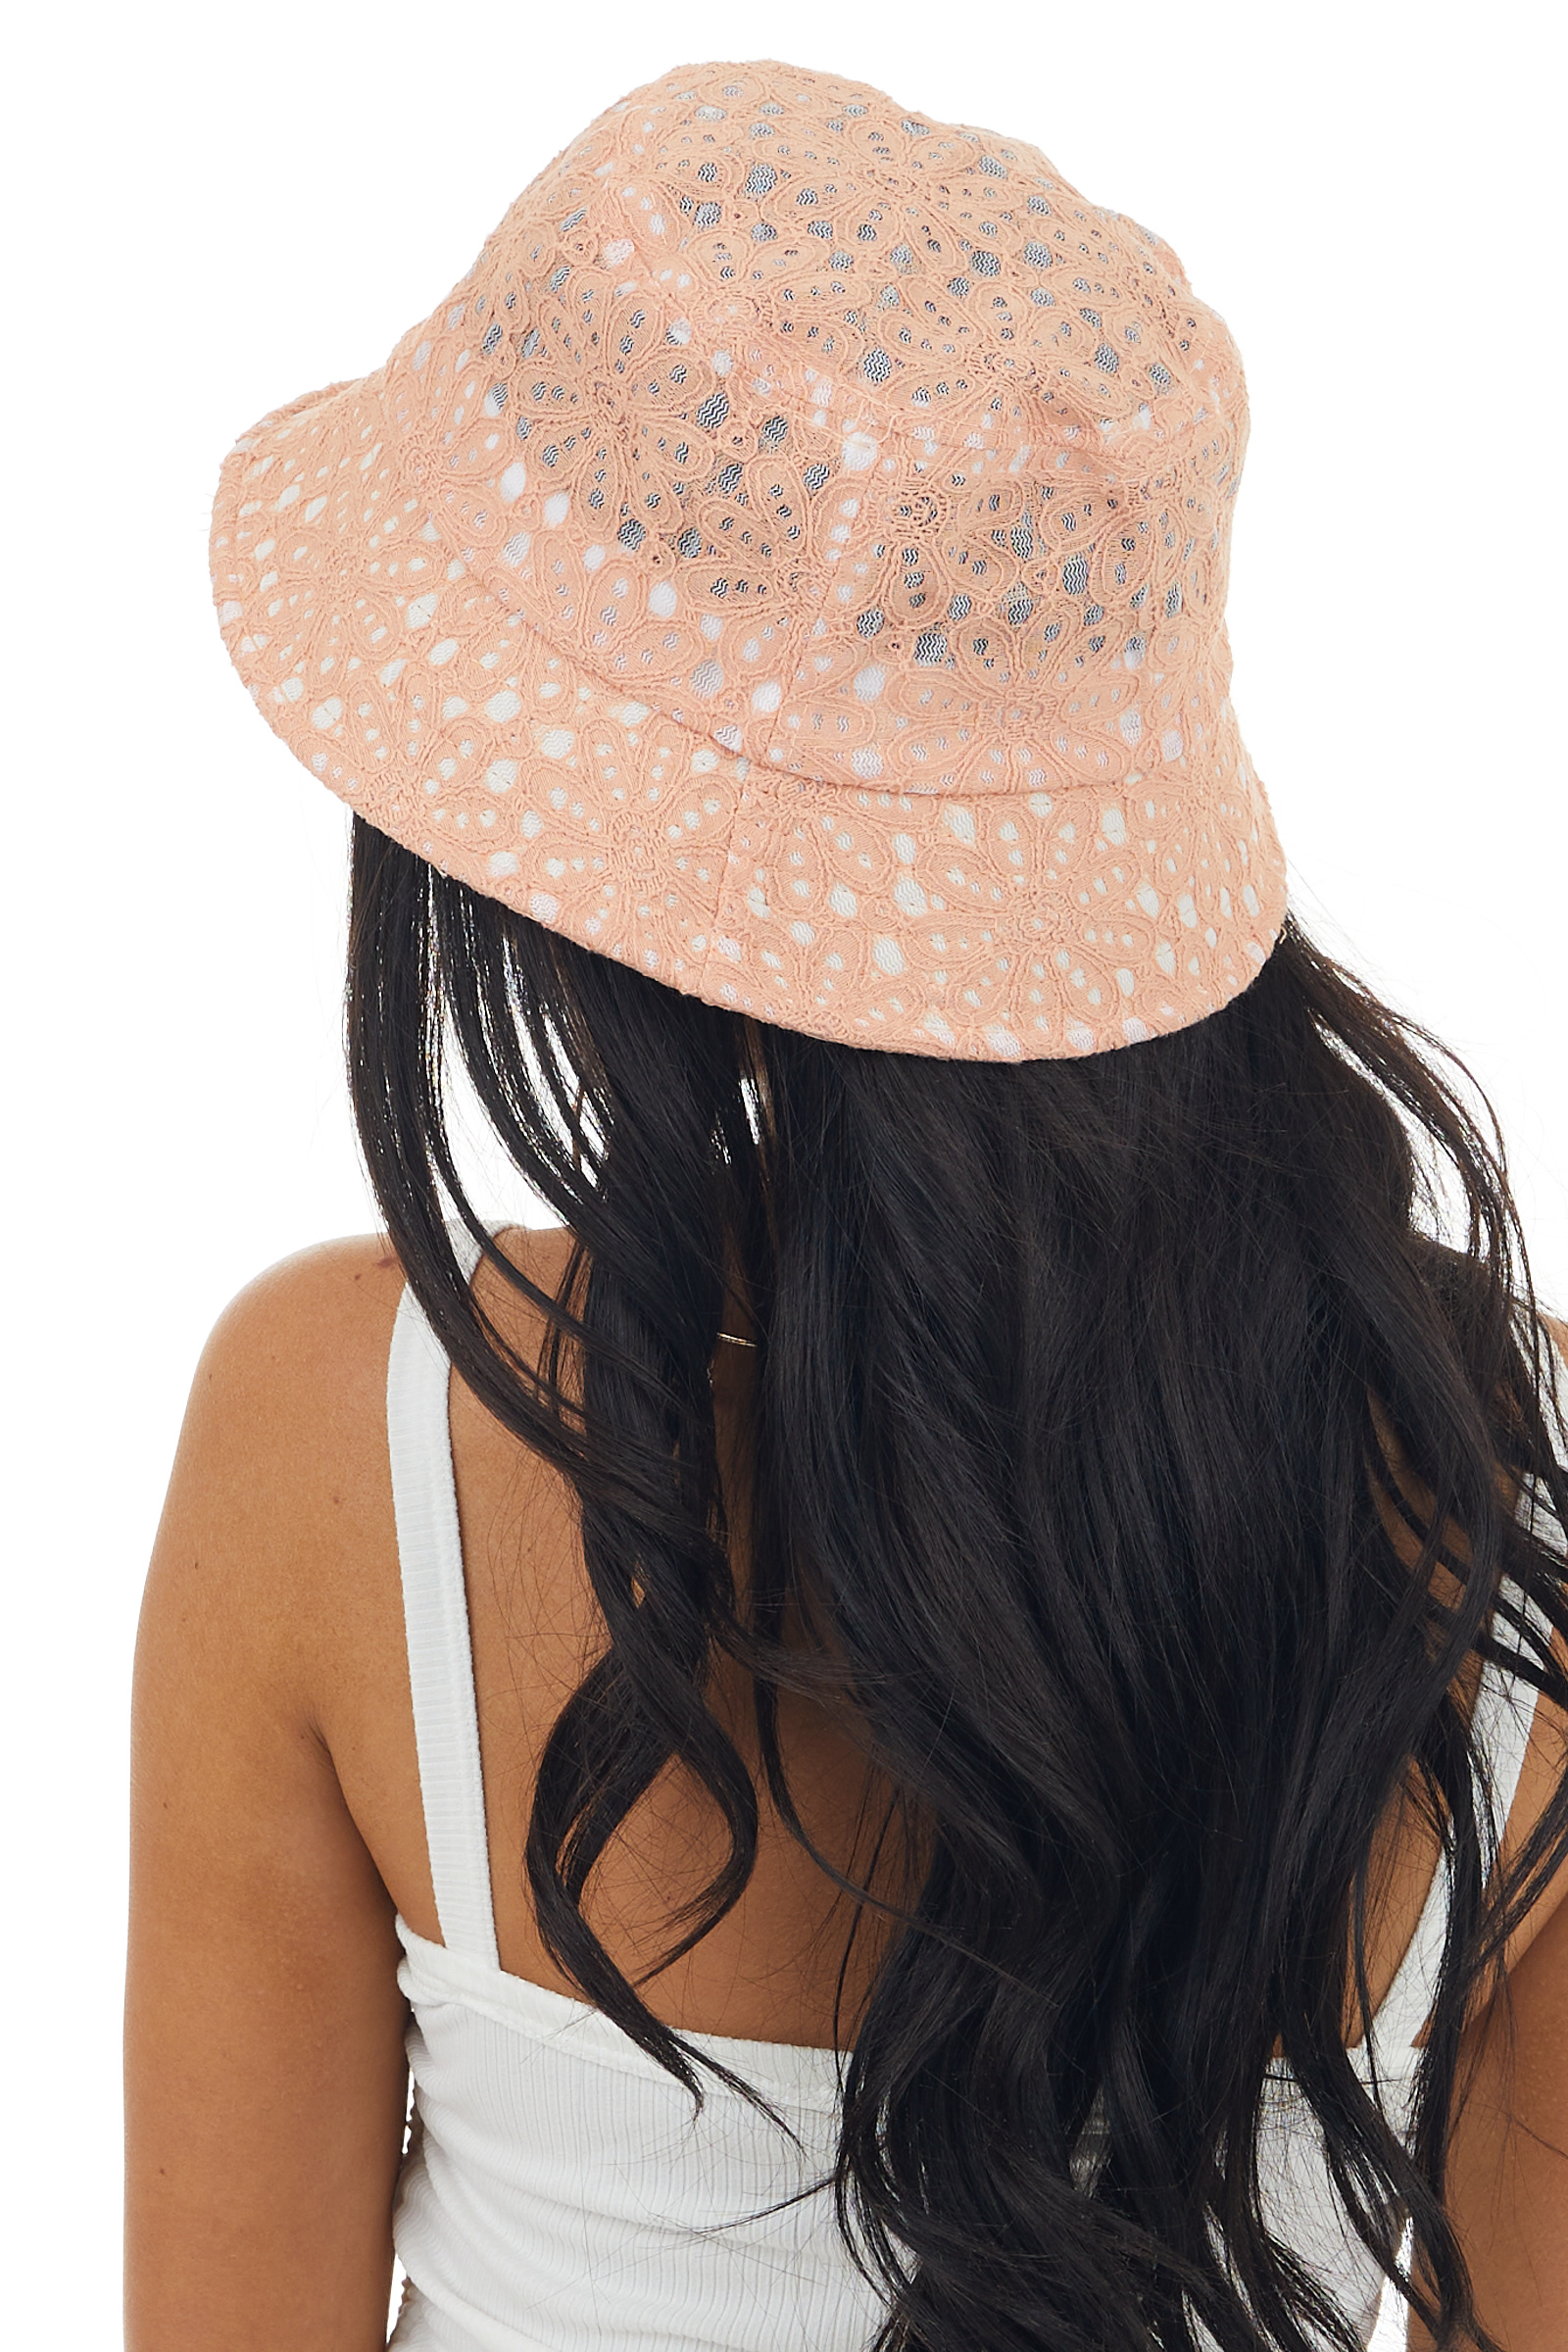 Dark Peach Floral Lace Bucket Hat with Sheer Mesh Details